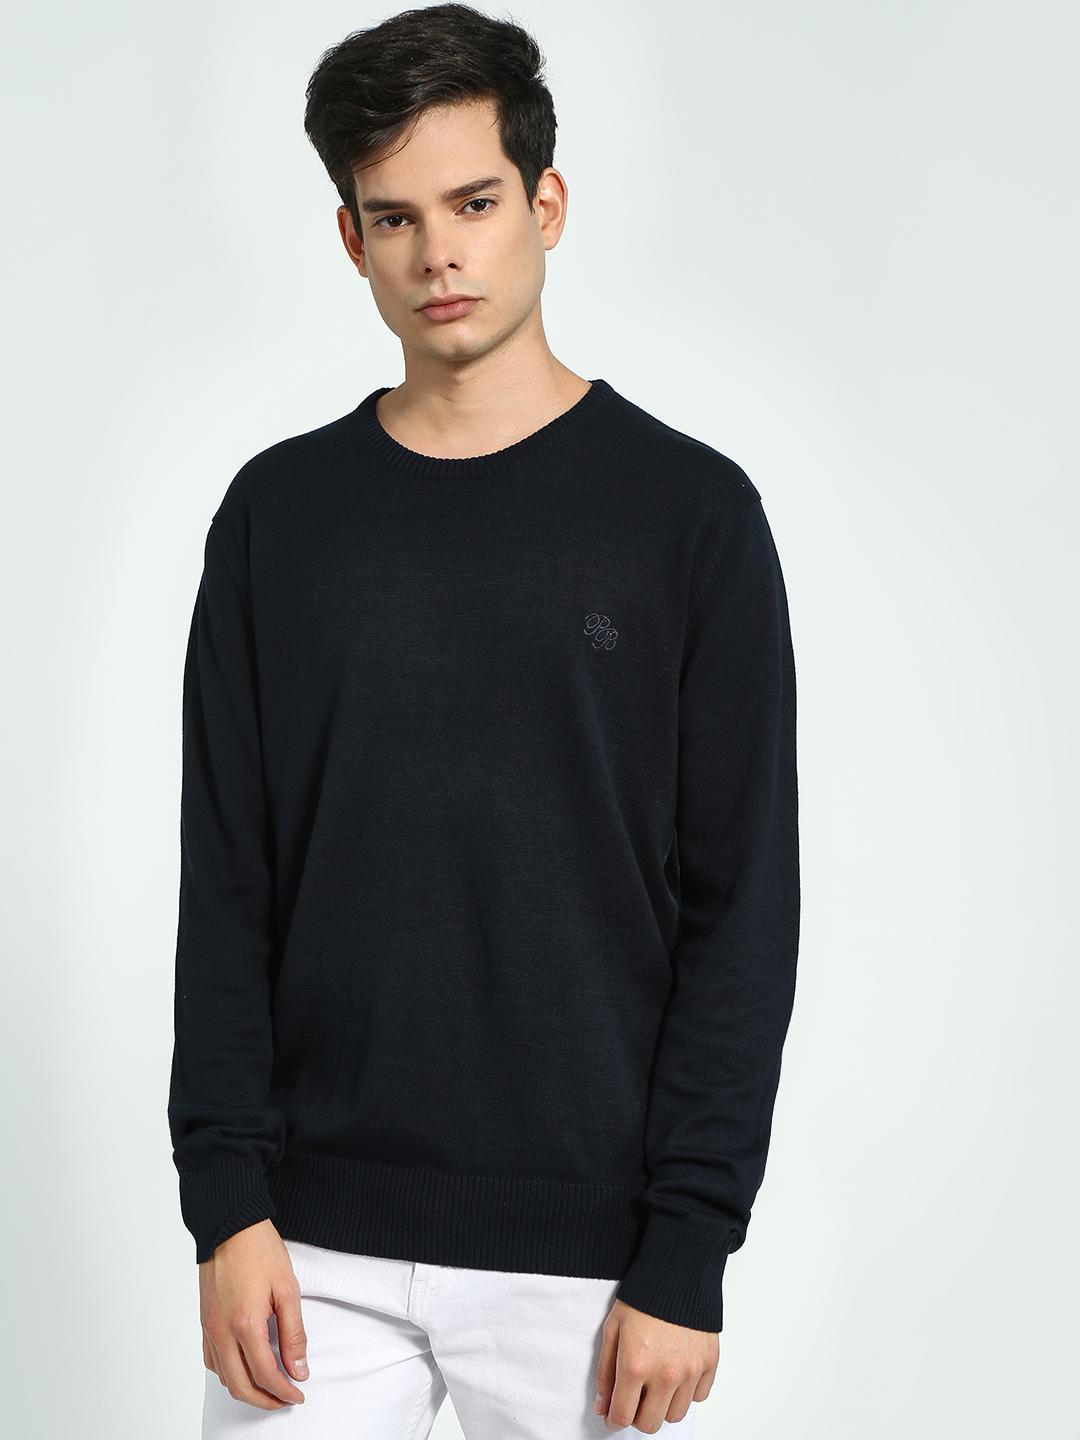 Brave Soul Black Crew Neck Long Sleeve Sweater 1